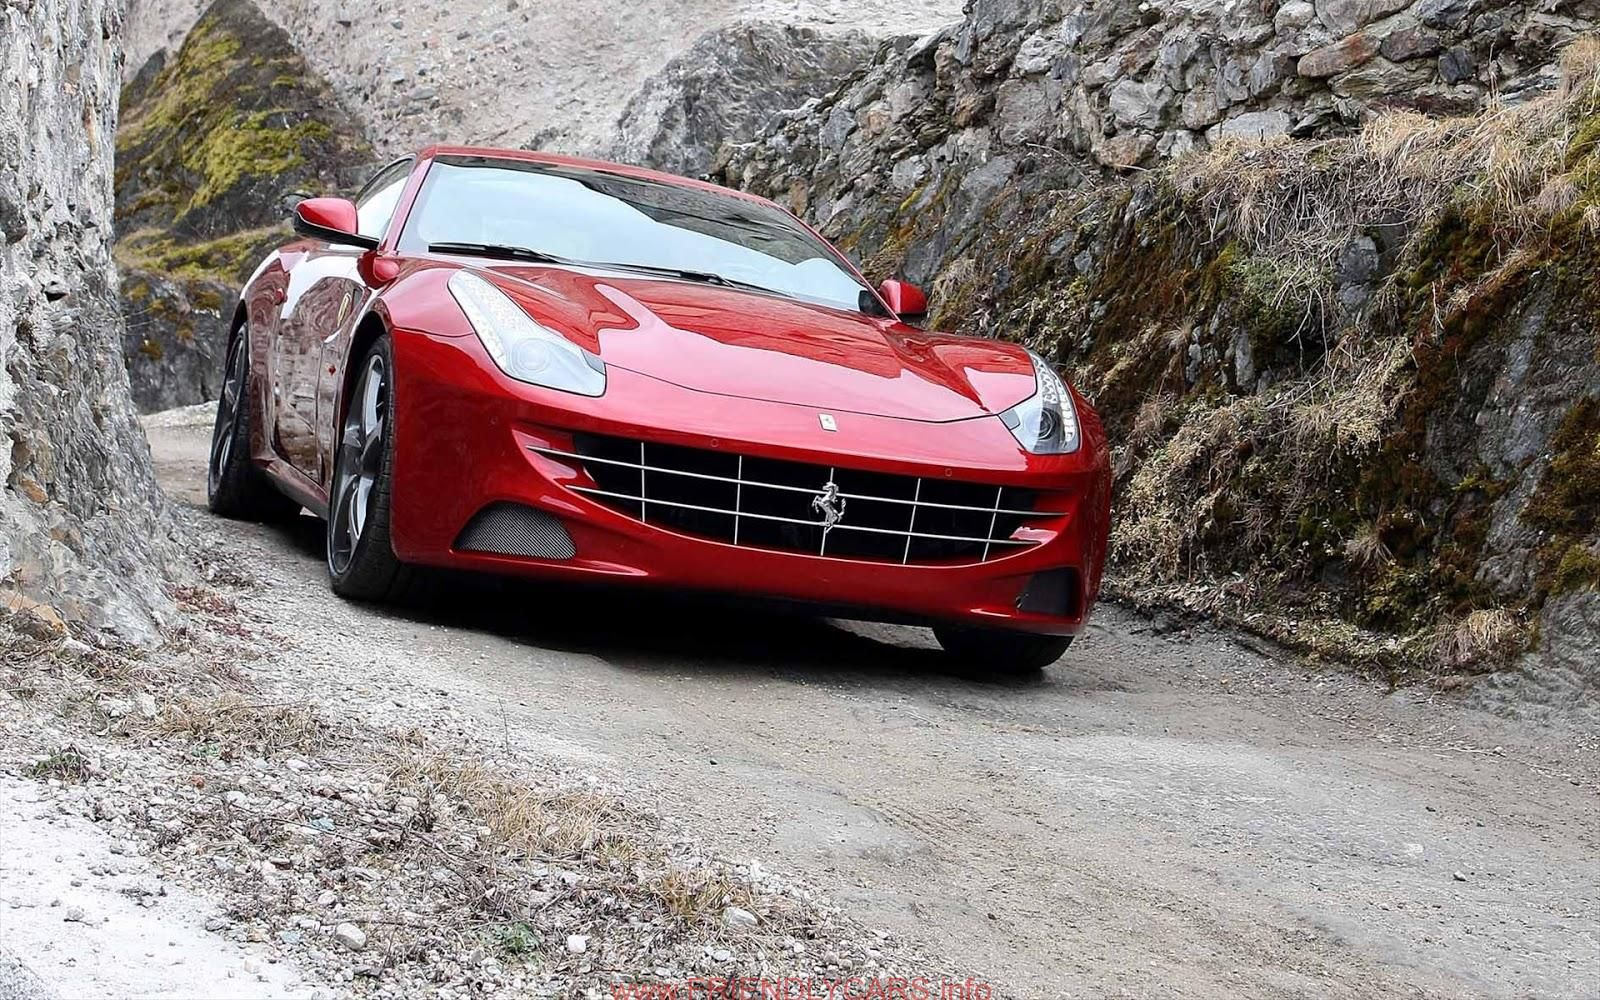 Nice Ferrari Ff Red Interior Car Images Hd Cars Wallpapers12